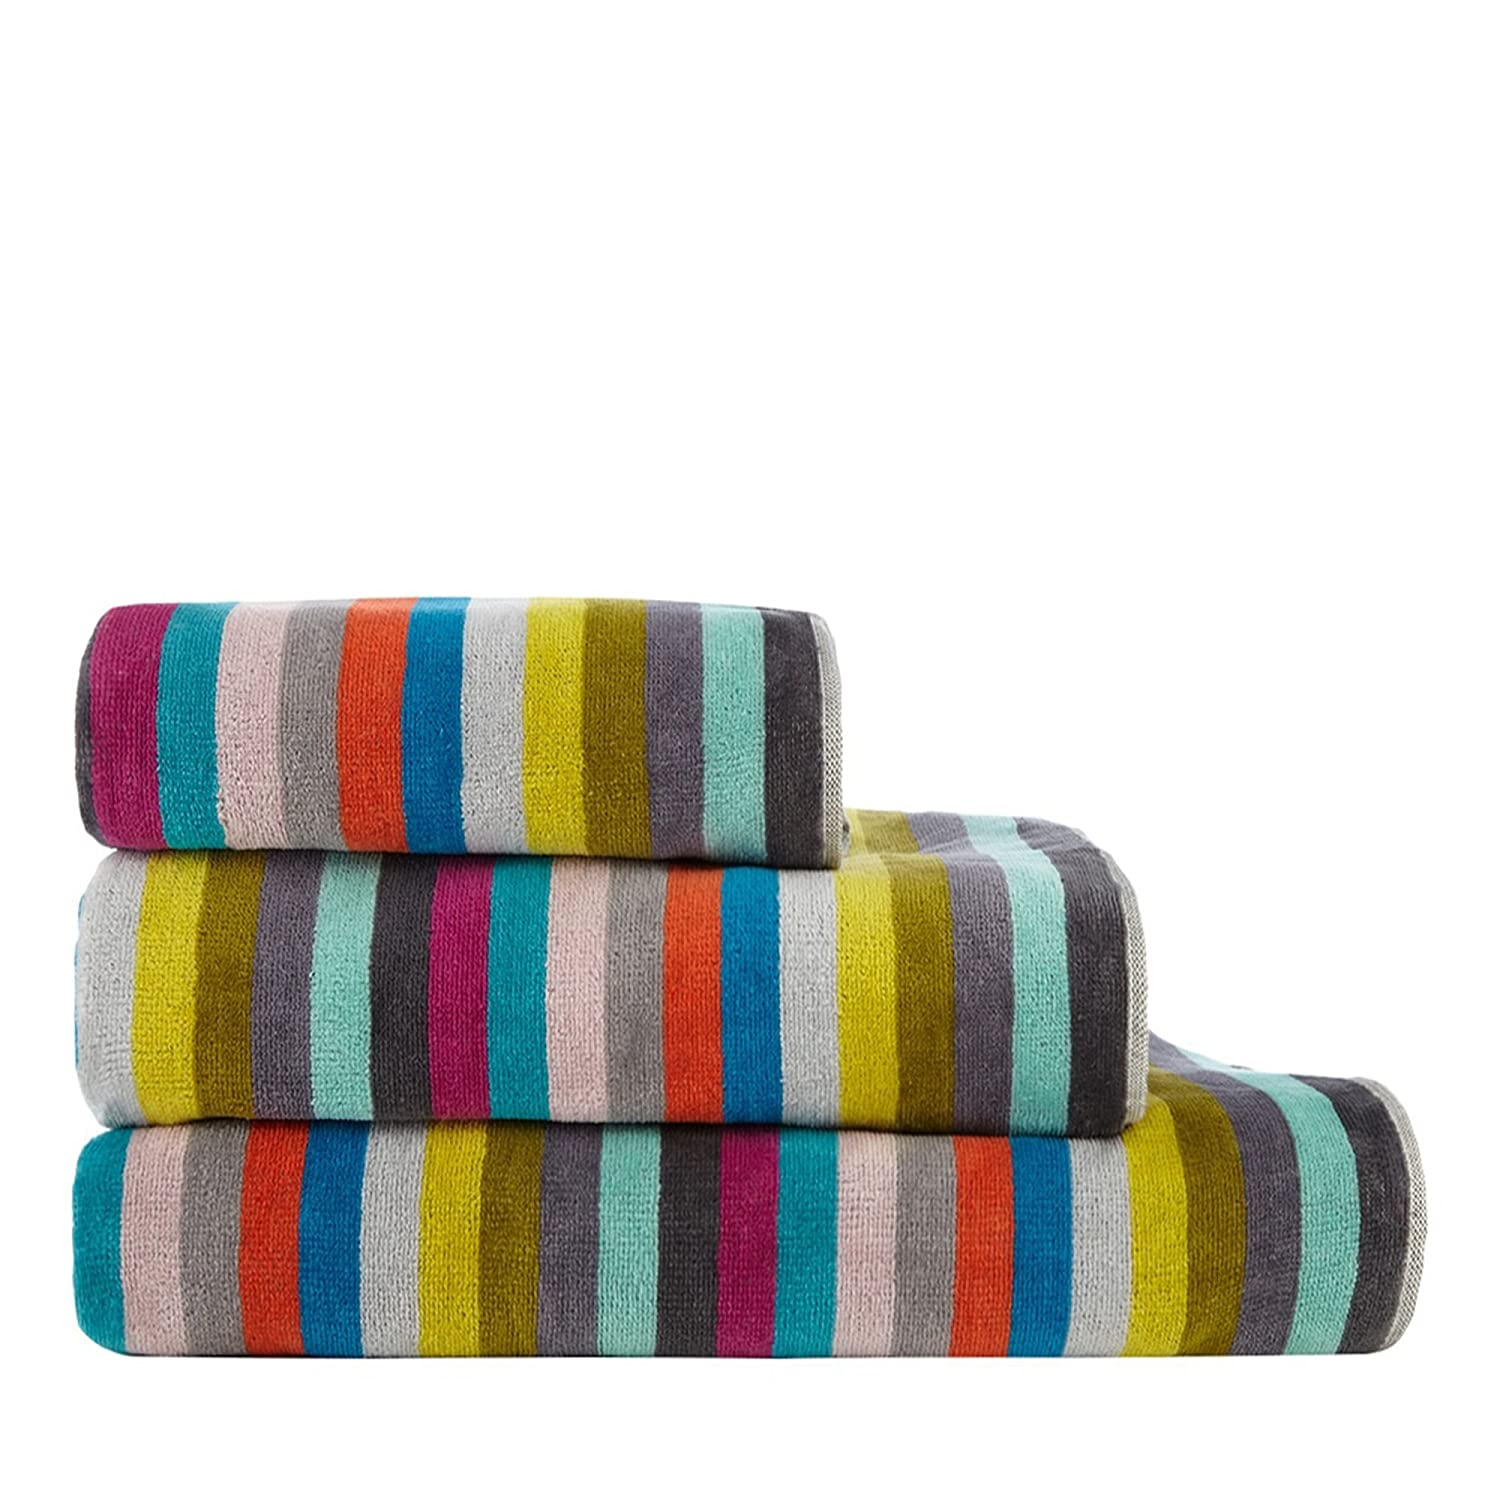 Debenhams Multi-Coloured 'Lizzie' Striped Print Hand Towel Bath Sheet Home Collection Basics